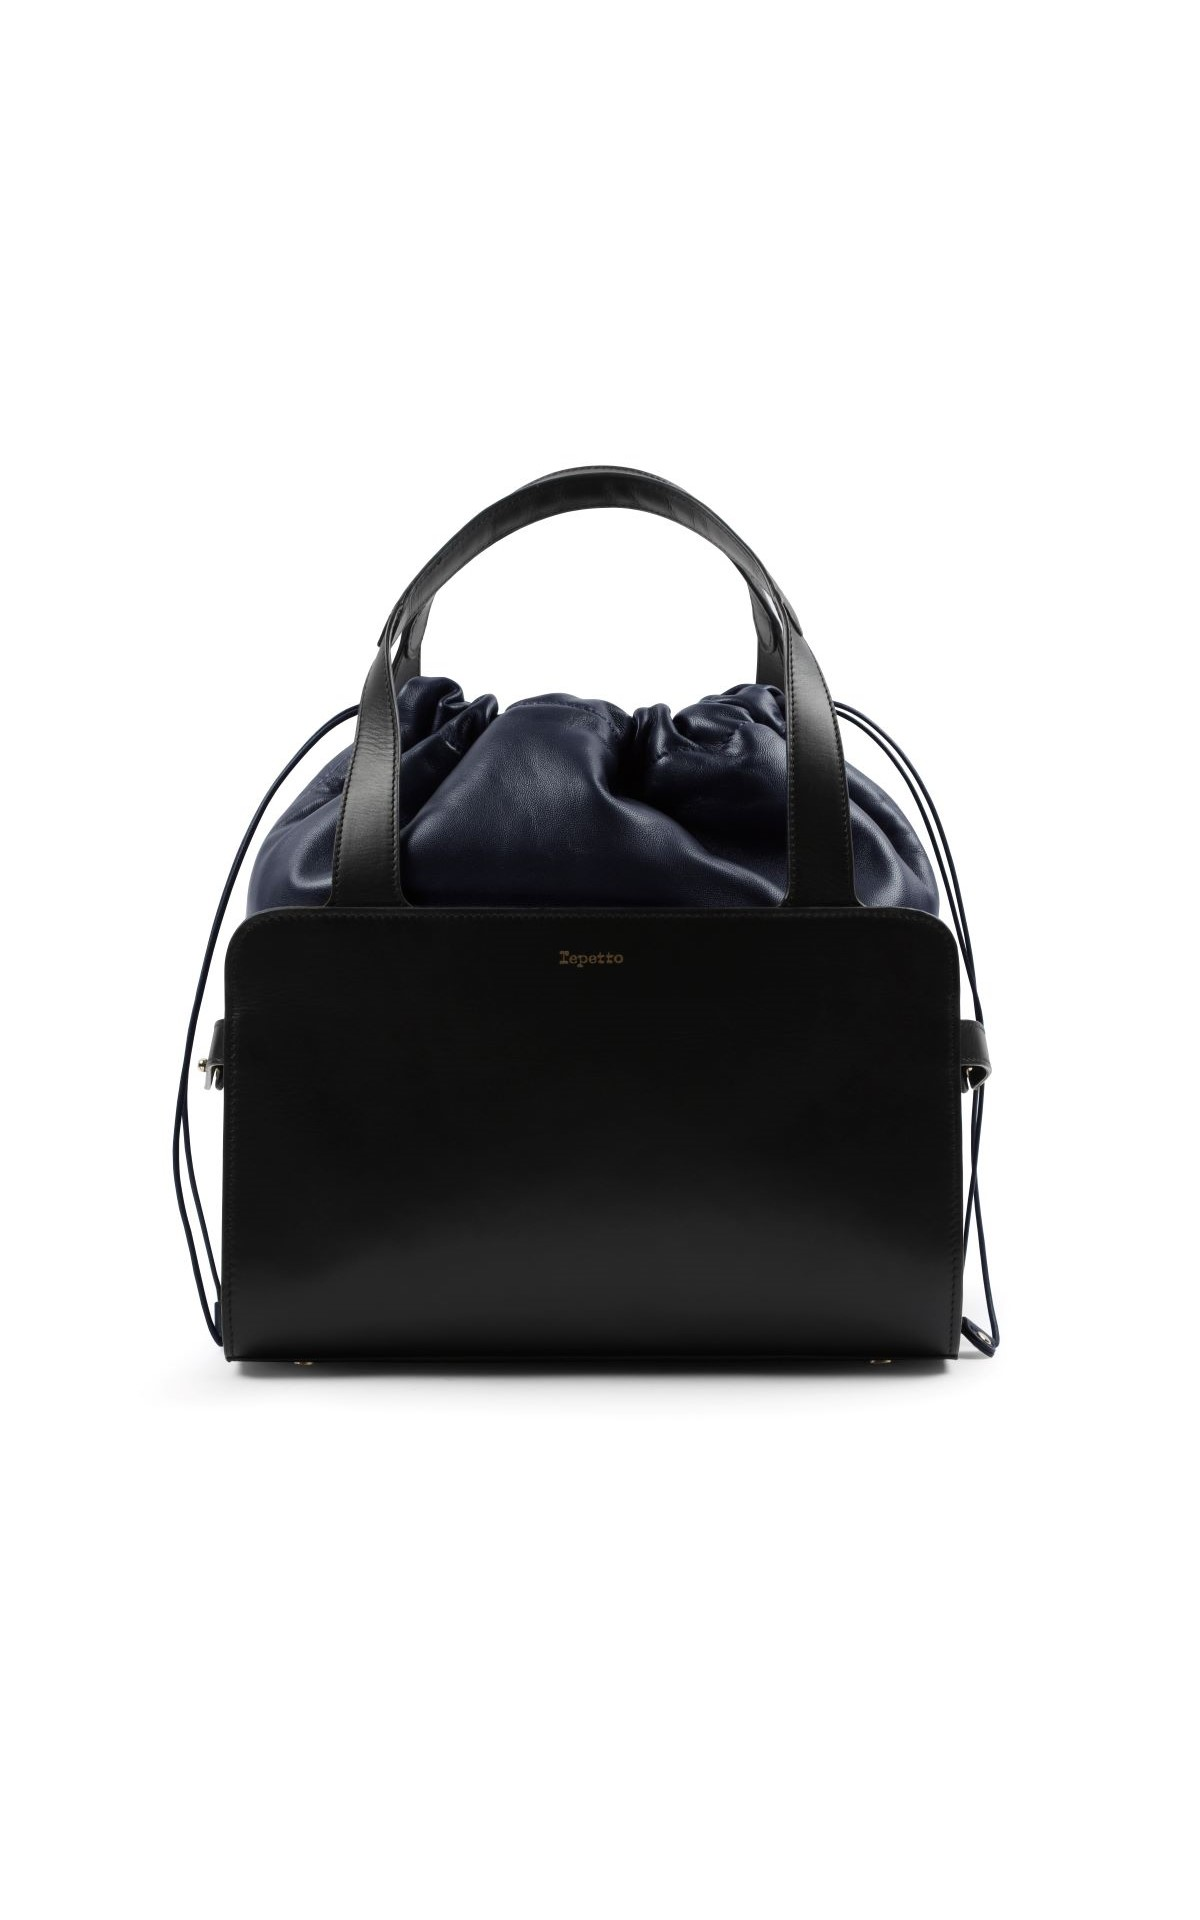 La Vallée Village Repetto Black Grand Enveloppé bag